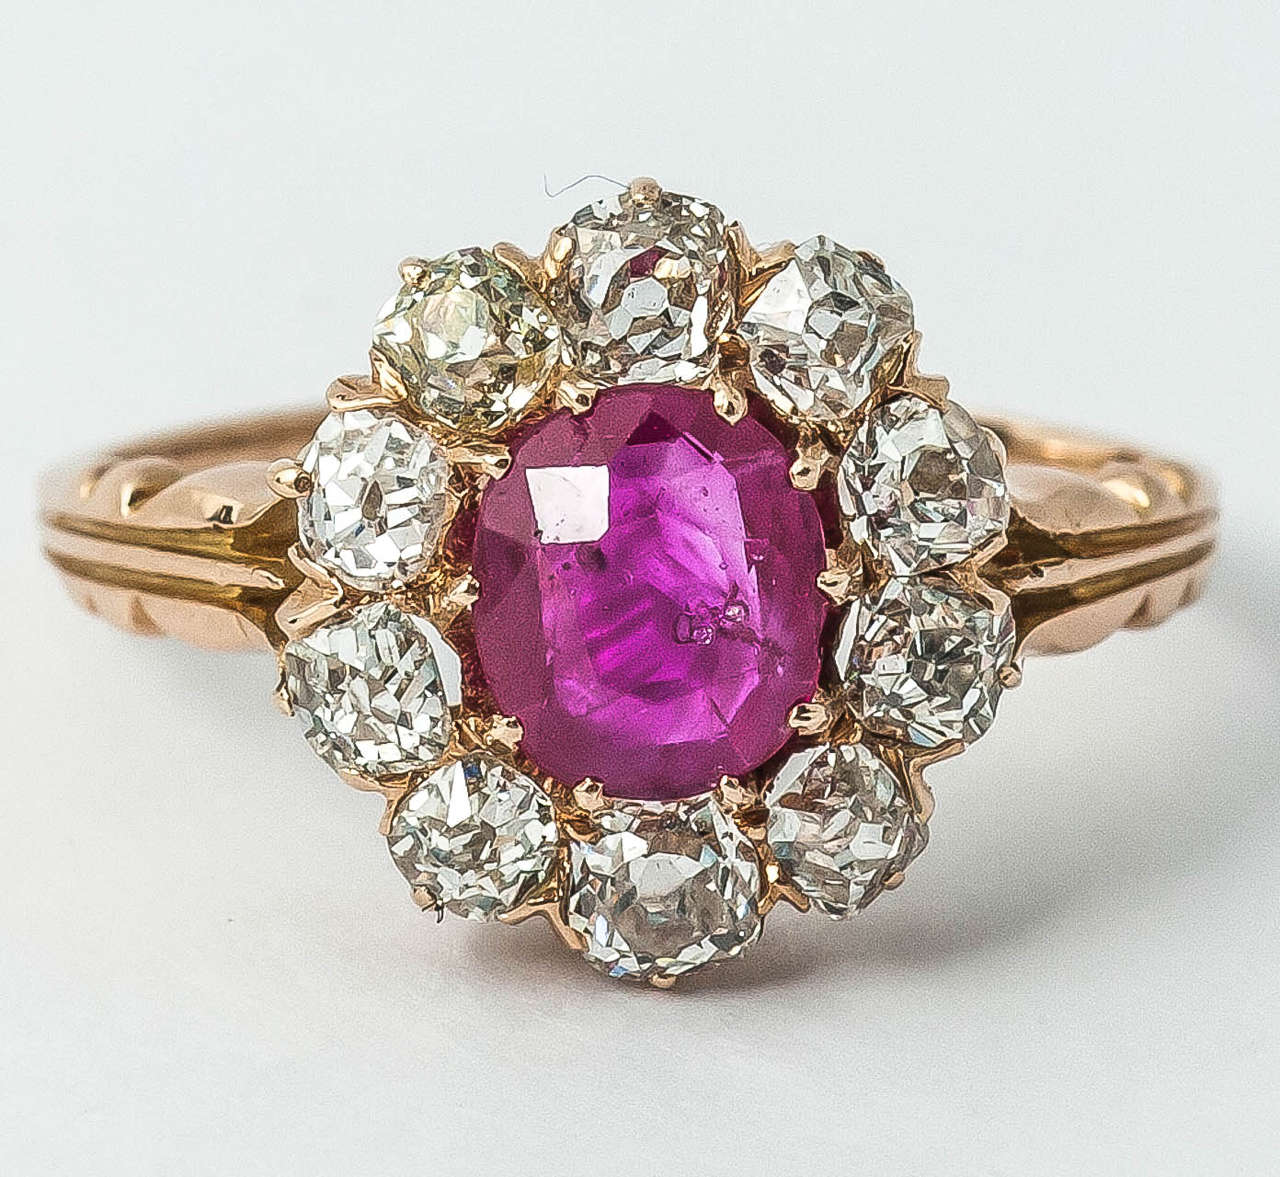 Nineteenth century oval burma ruby and old cut brilliant diamond cluster ring, circa 1870.